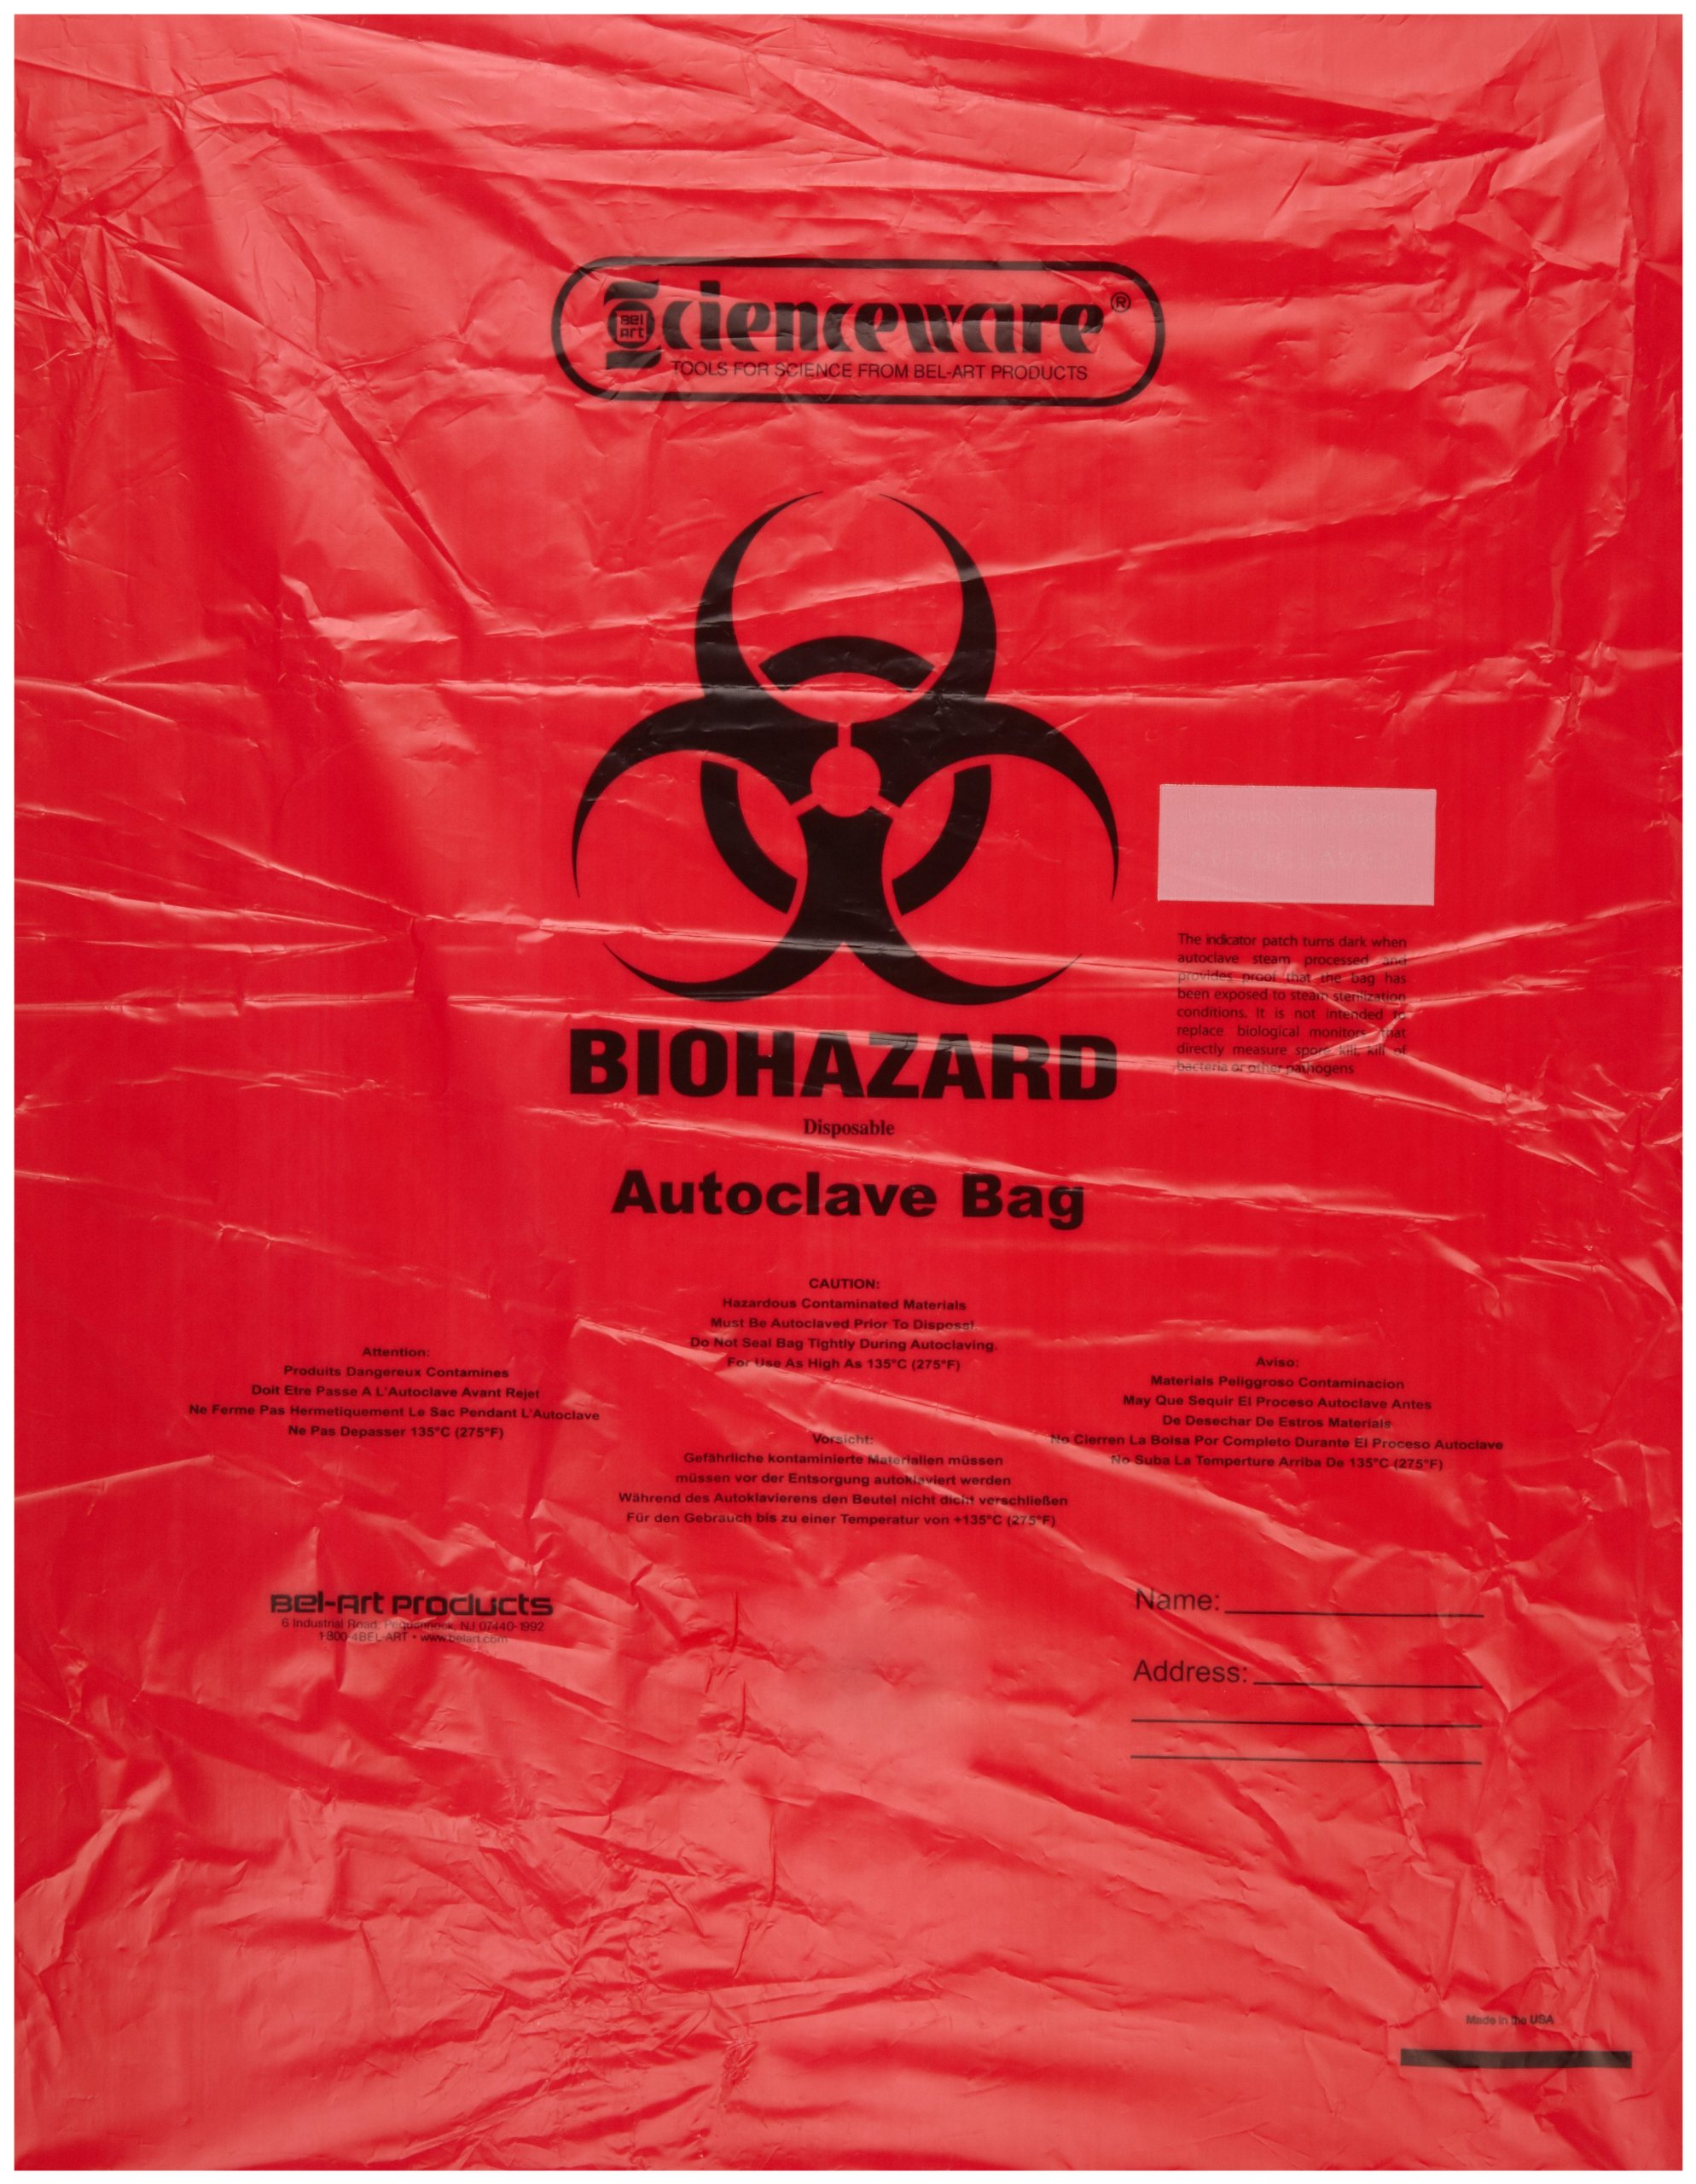 Bel-Art F13165-2535 Polypropylene 10-12 Gallon Super Strength Red Biohazard Disposal Bags with Warning Label/Sterilization Indicator, 25W x 35 in. H, 2.0mil Thick (Pack of 200)